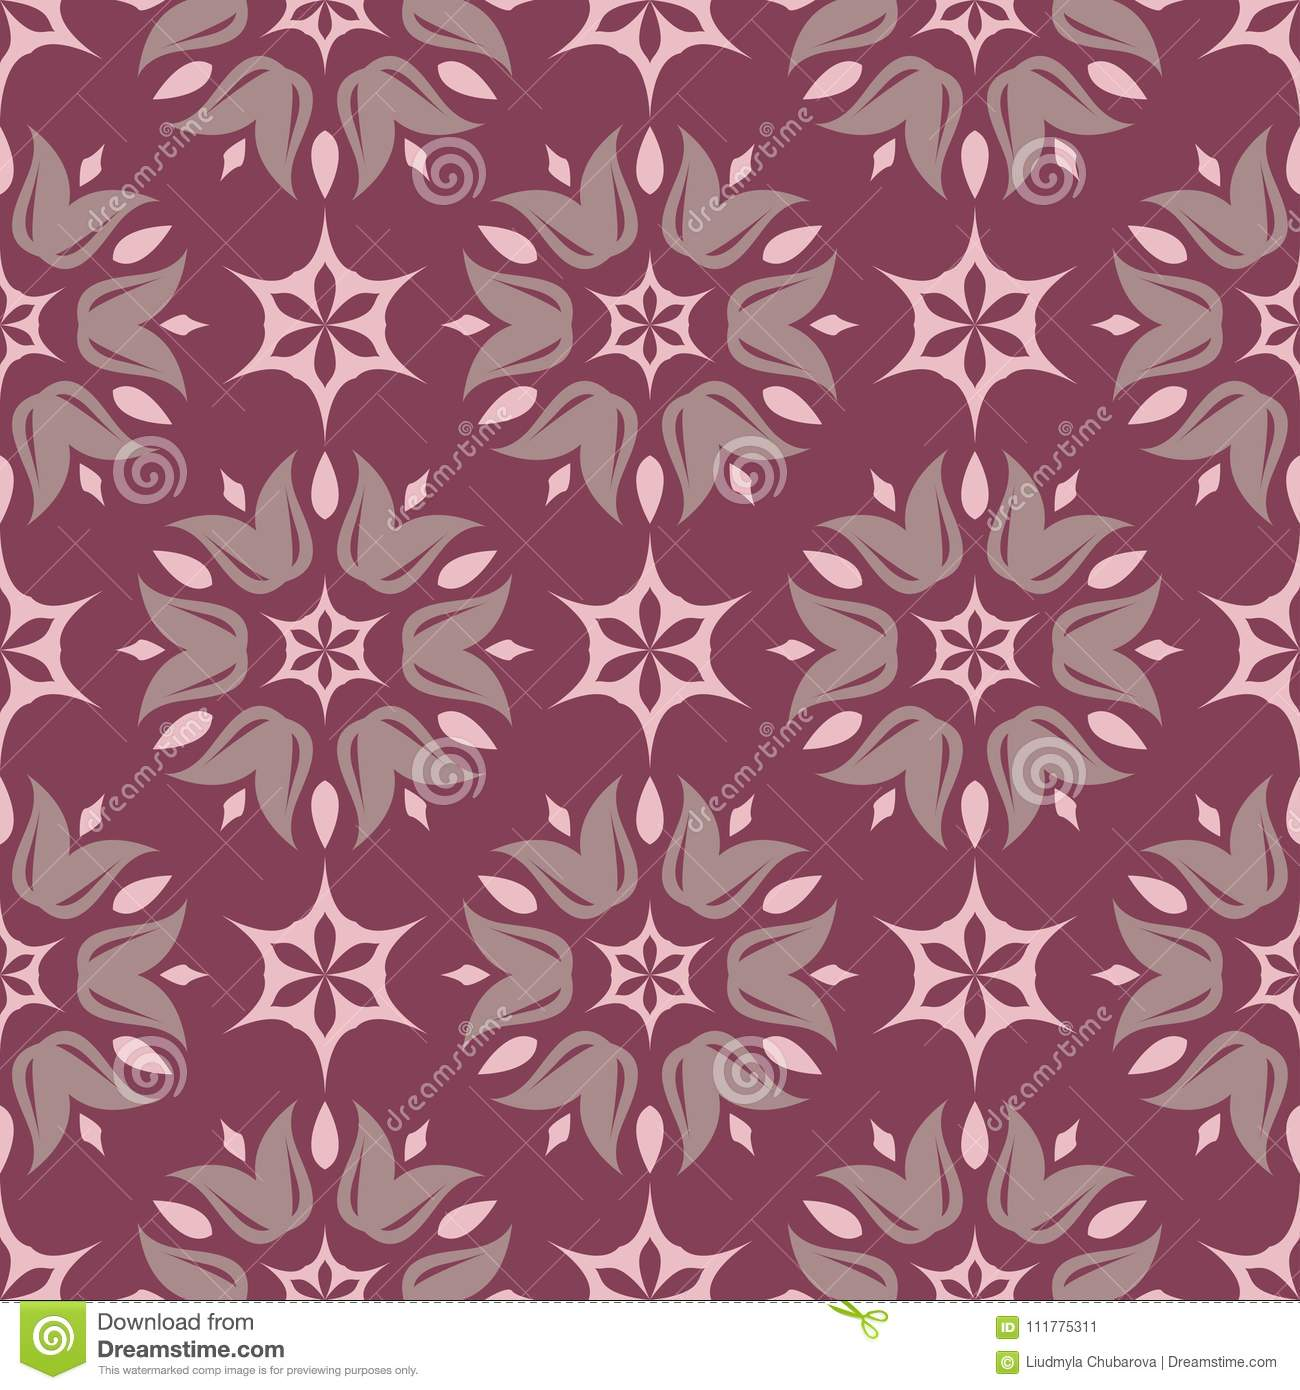 Purple red floral seamless pattern. Background with flower design elements